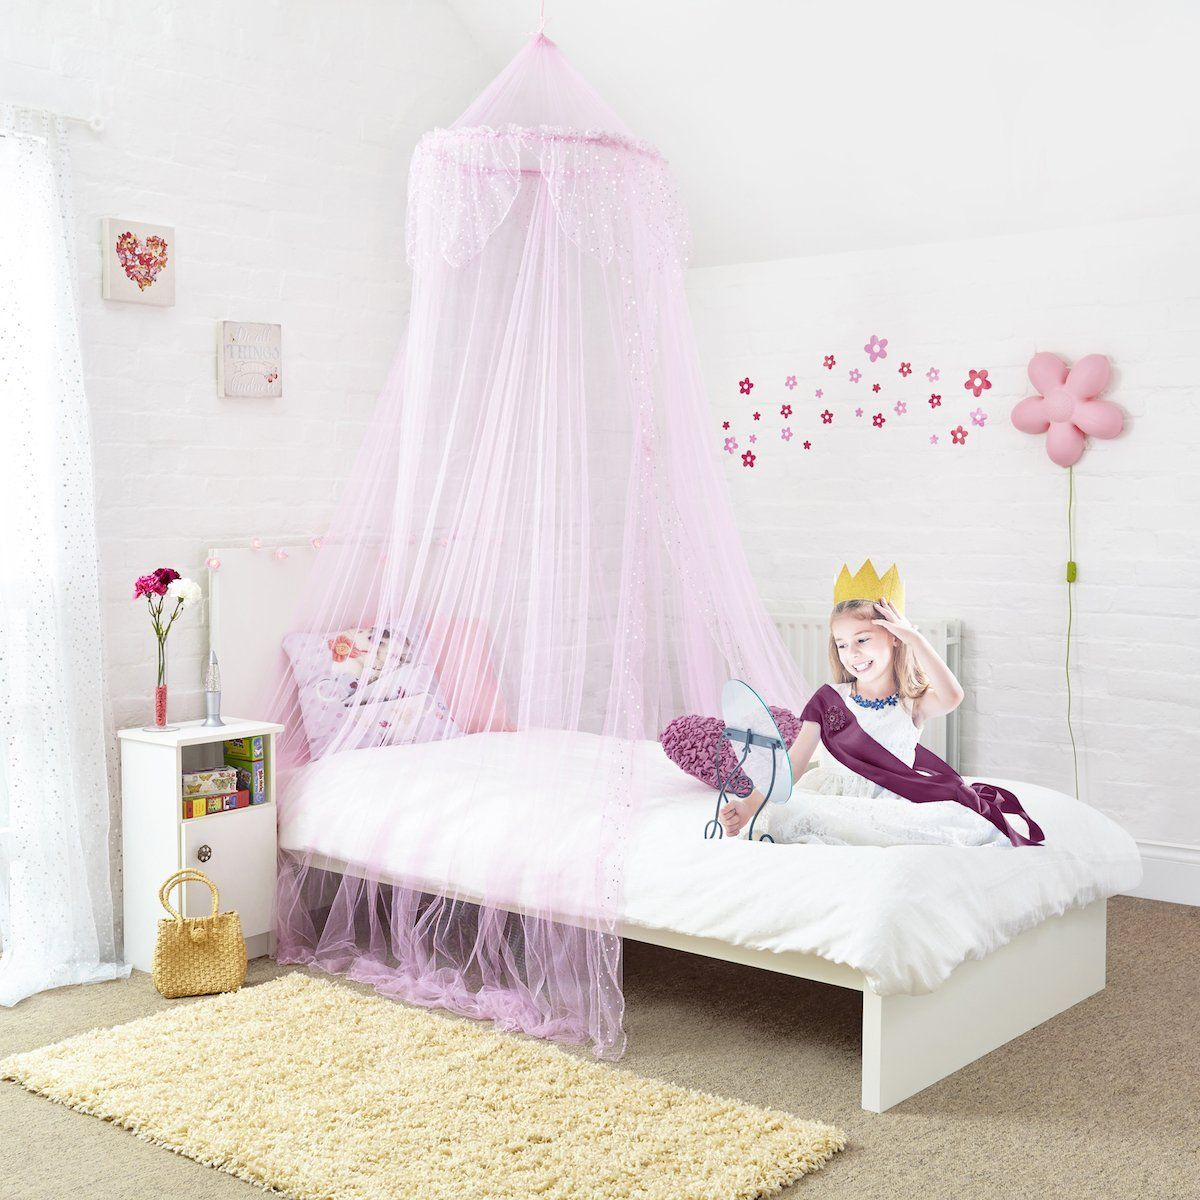 £20 Princess Bed Canopy - Beautiful Silver Sequined Childrens Bed Canopy in Pink - Quick & 20 Princess Bed Canopy - Beautiful Silver Sequined Childrens Bed ...